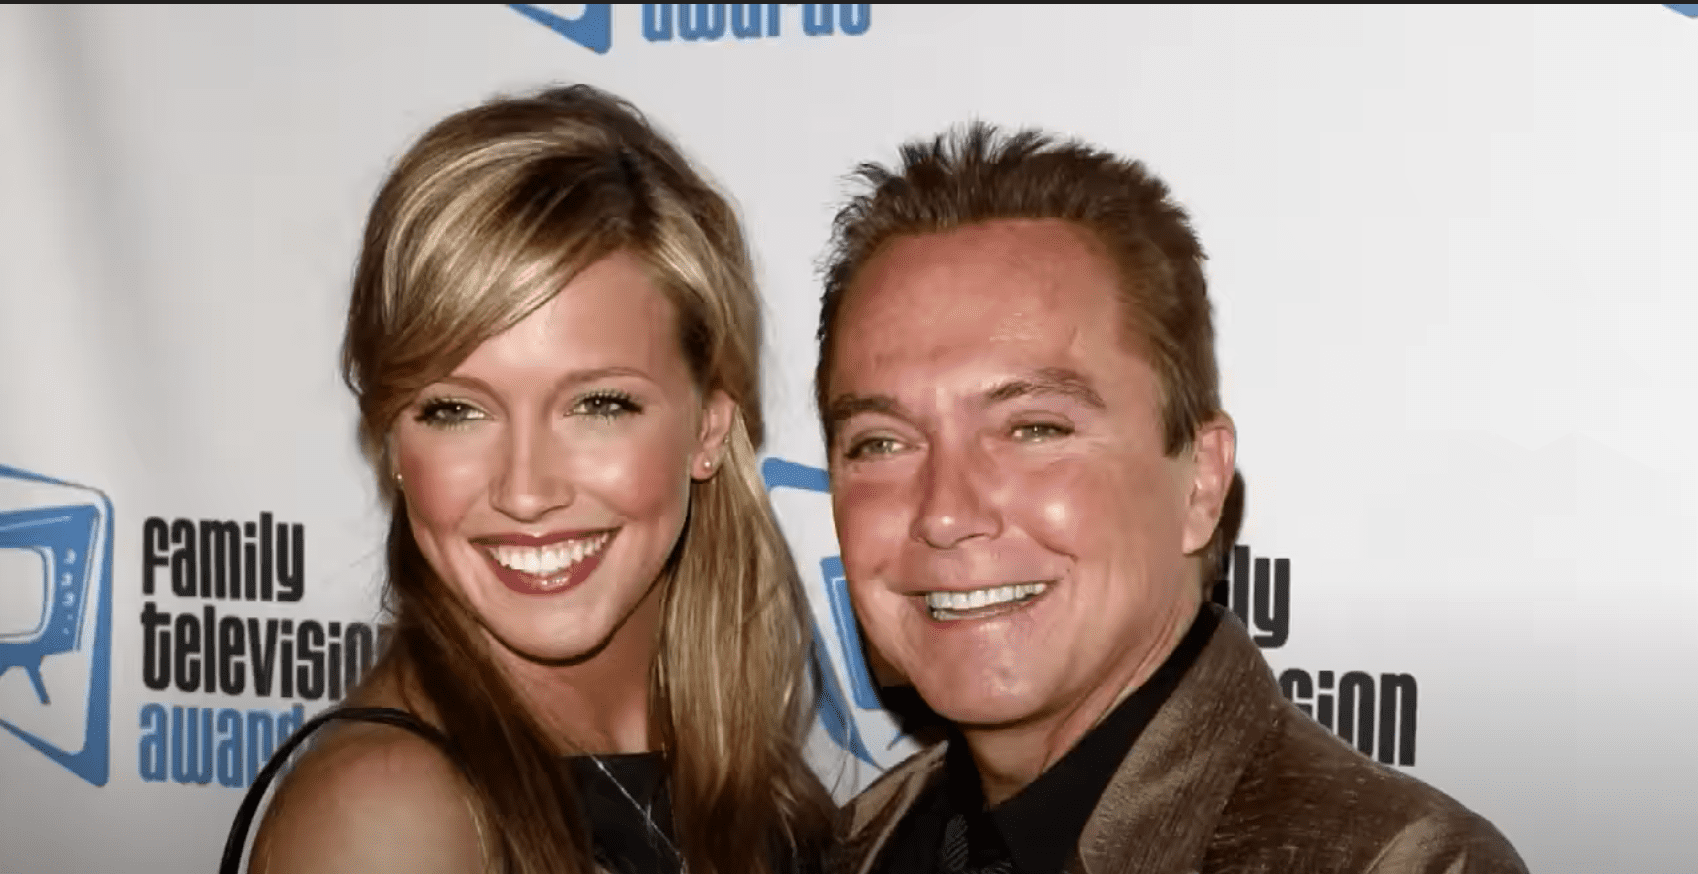 Image Source: Youtube/Inside Edition/David and Katie Cassidy at the Family Television Awards